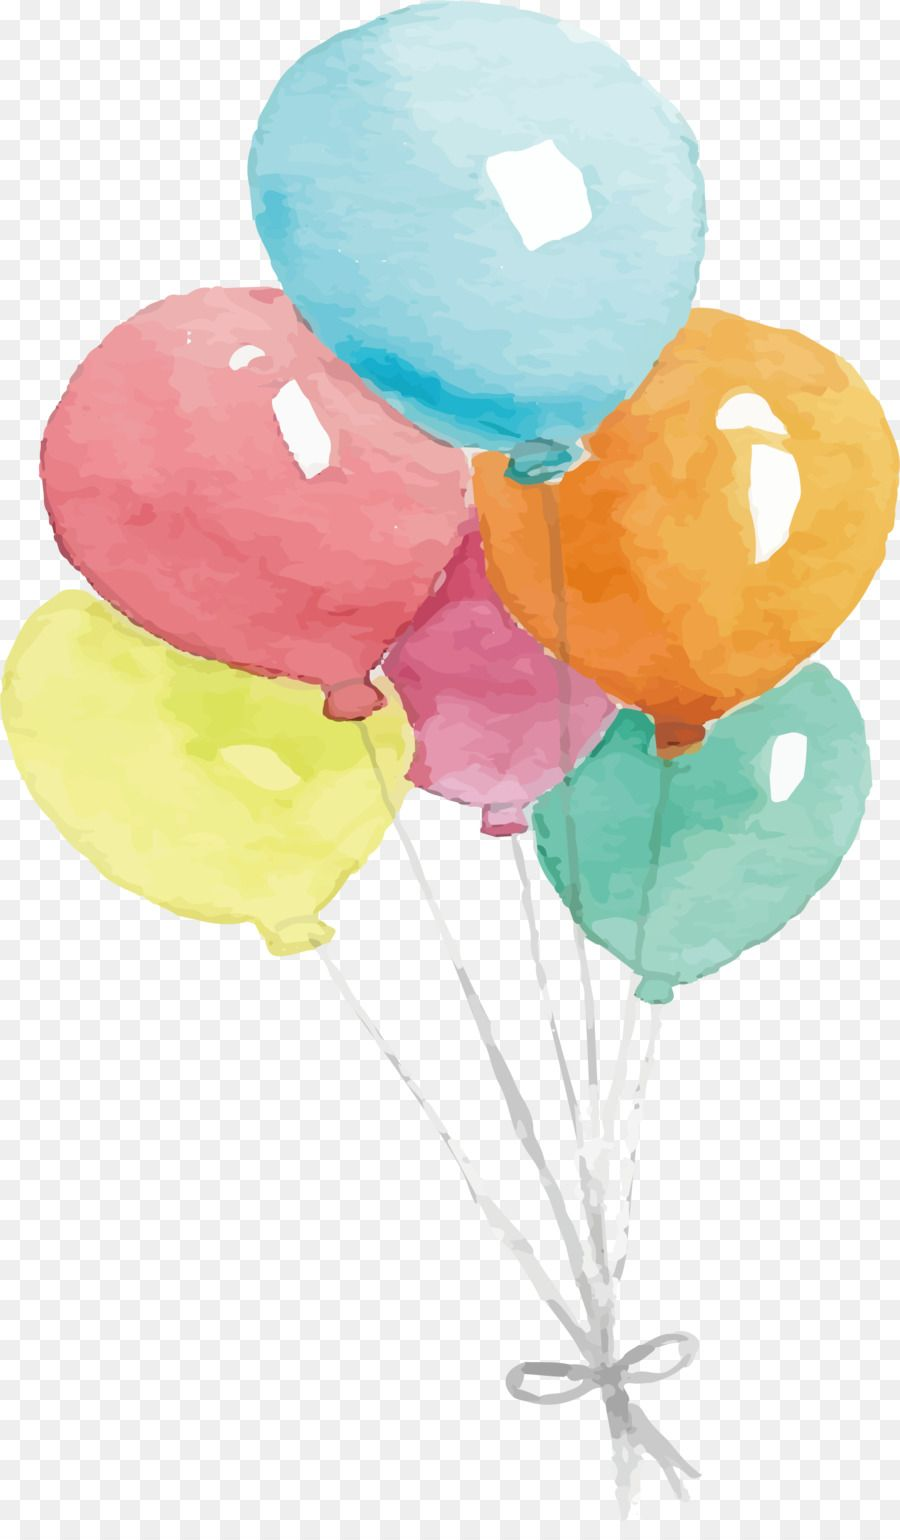 Watercolor Balloon Png Transparent Clipart Watercolor Painting Balloon Watercolour Flowers Balloon Painting Watercolor Paintings Watercolor Paintings Easy